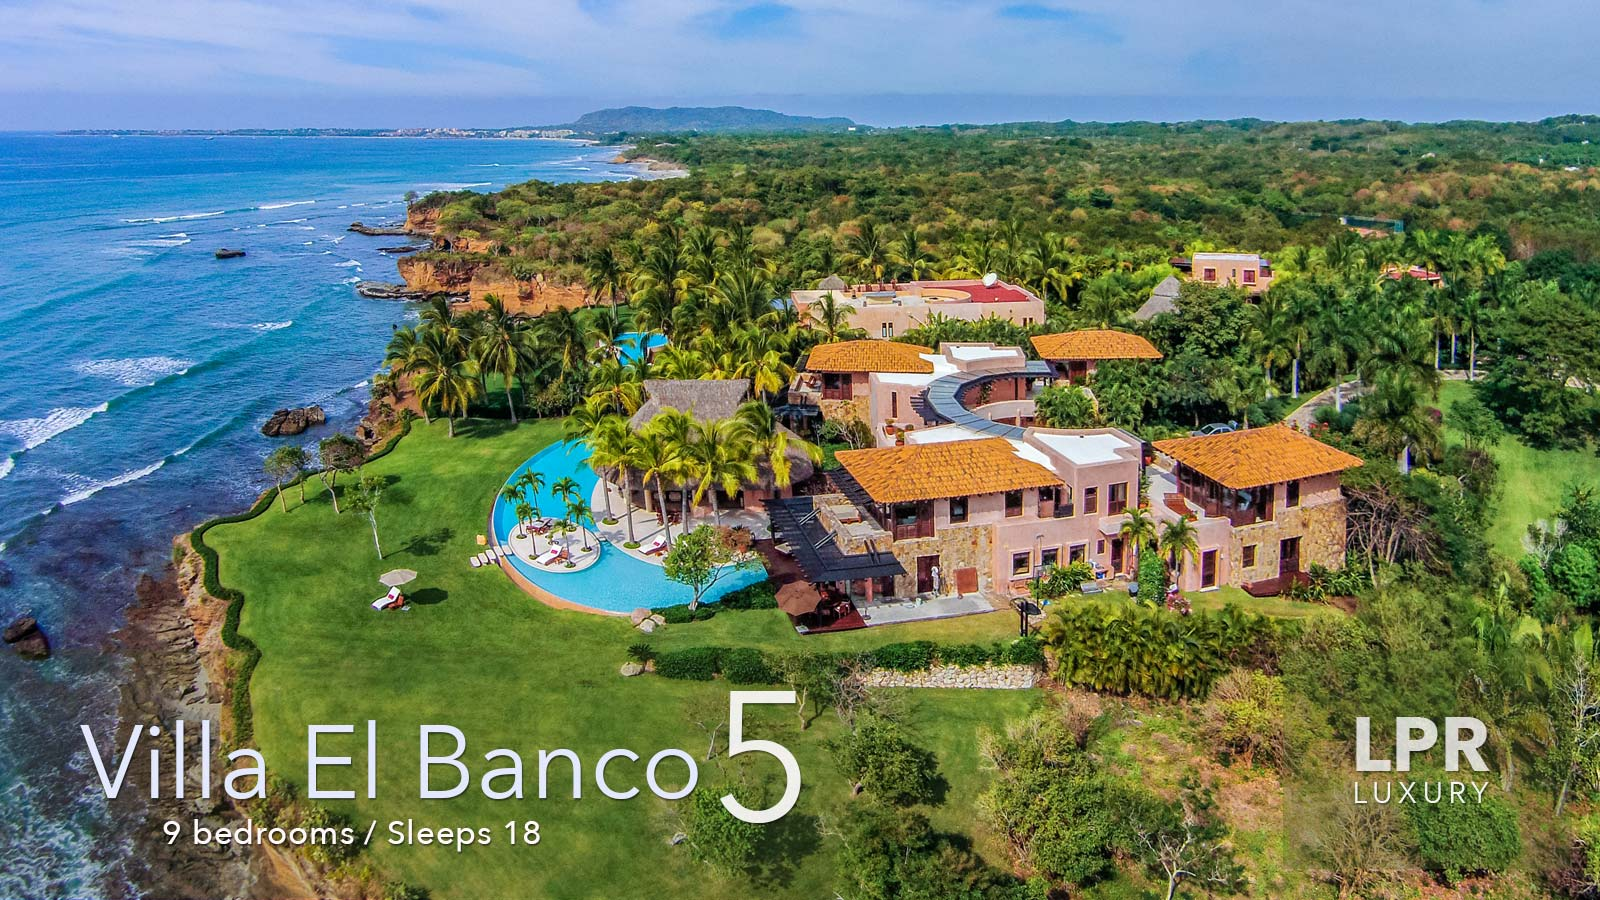 Villa El Banco 5 - Ultra luxury, ultra private, ultra cool El Banco Estates at the Auberge Resorts Susurros del Corazon at Punta de Mita, Riviera Nayarit, Mexico